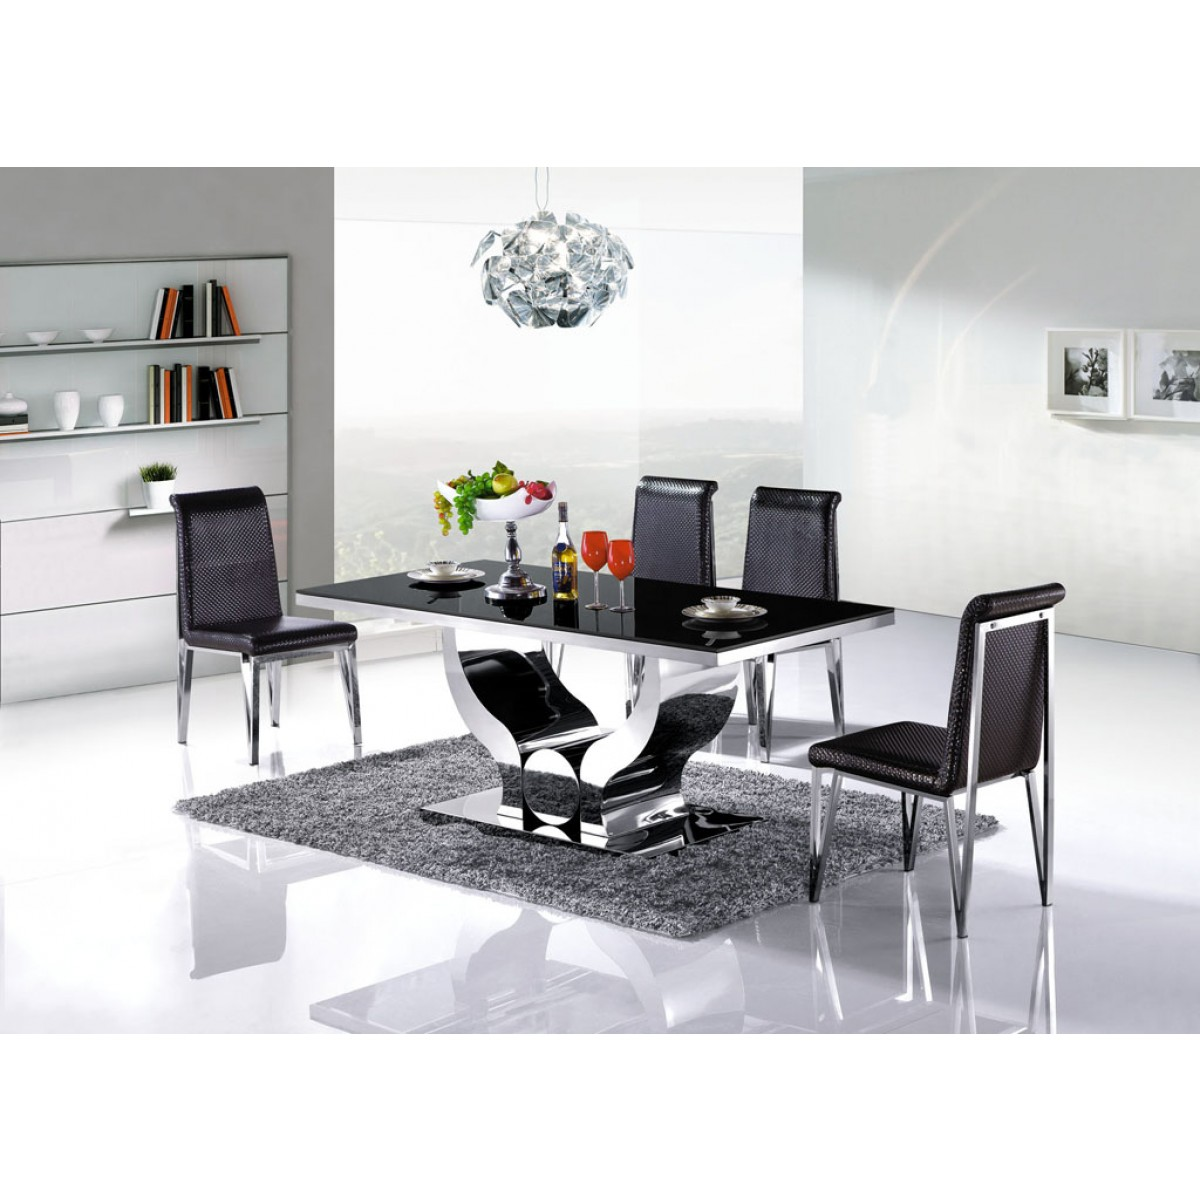 Table de salle manger en inox nova pop for Table de salle a manger etroite